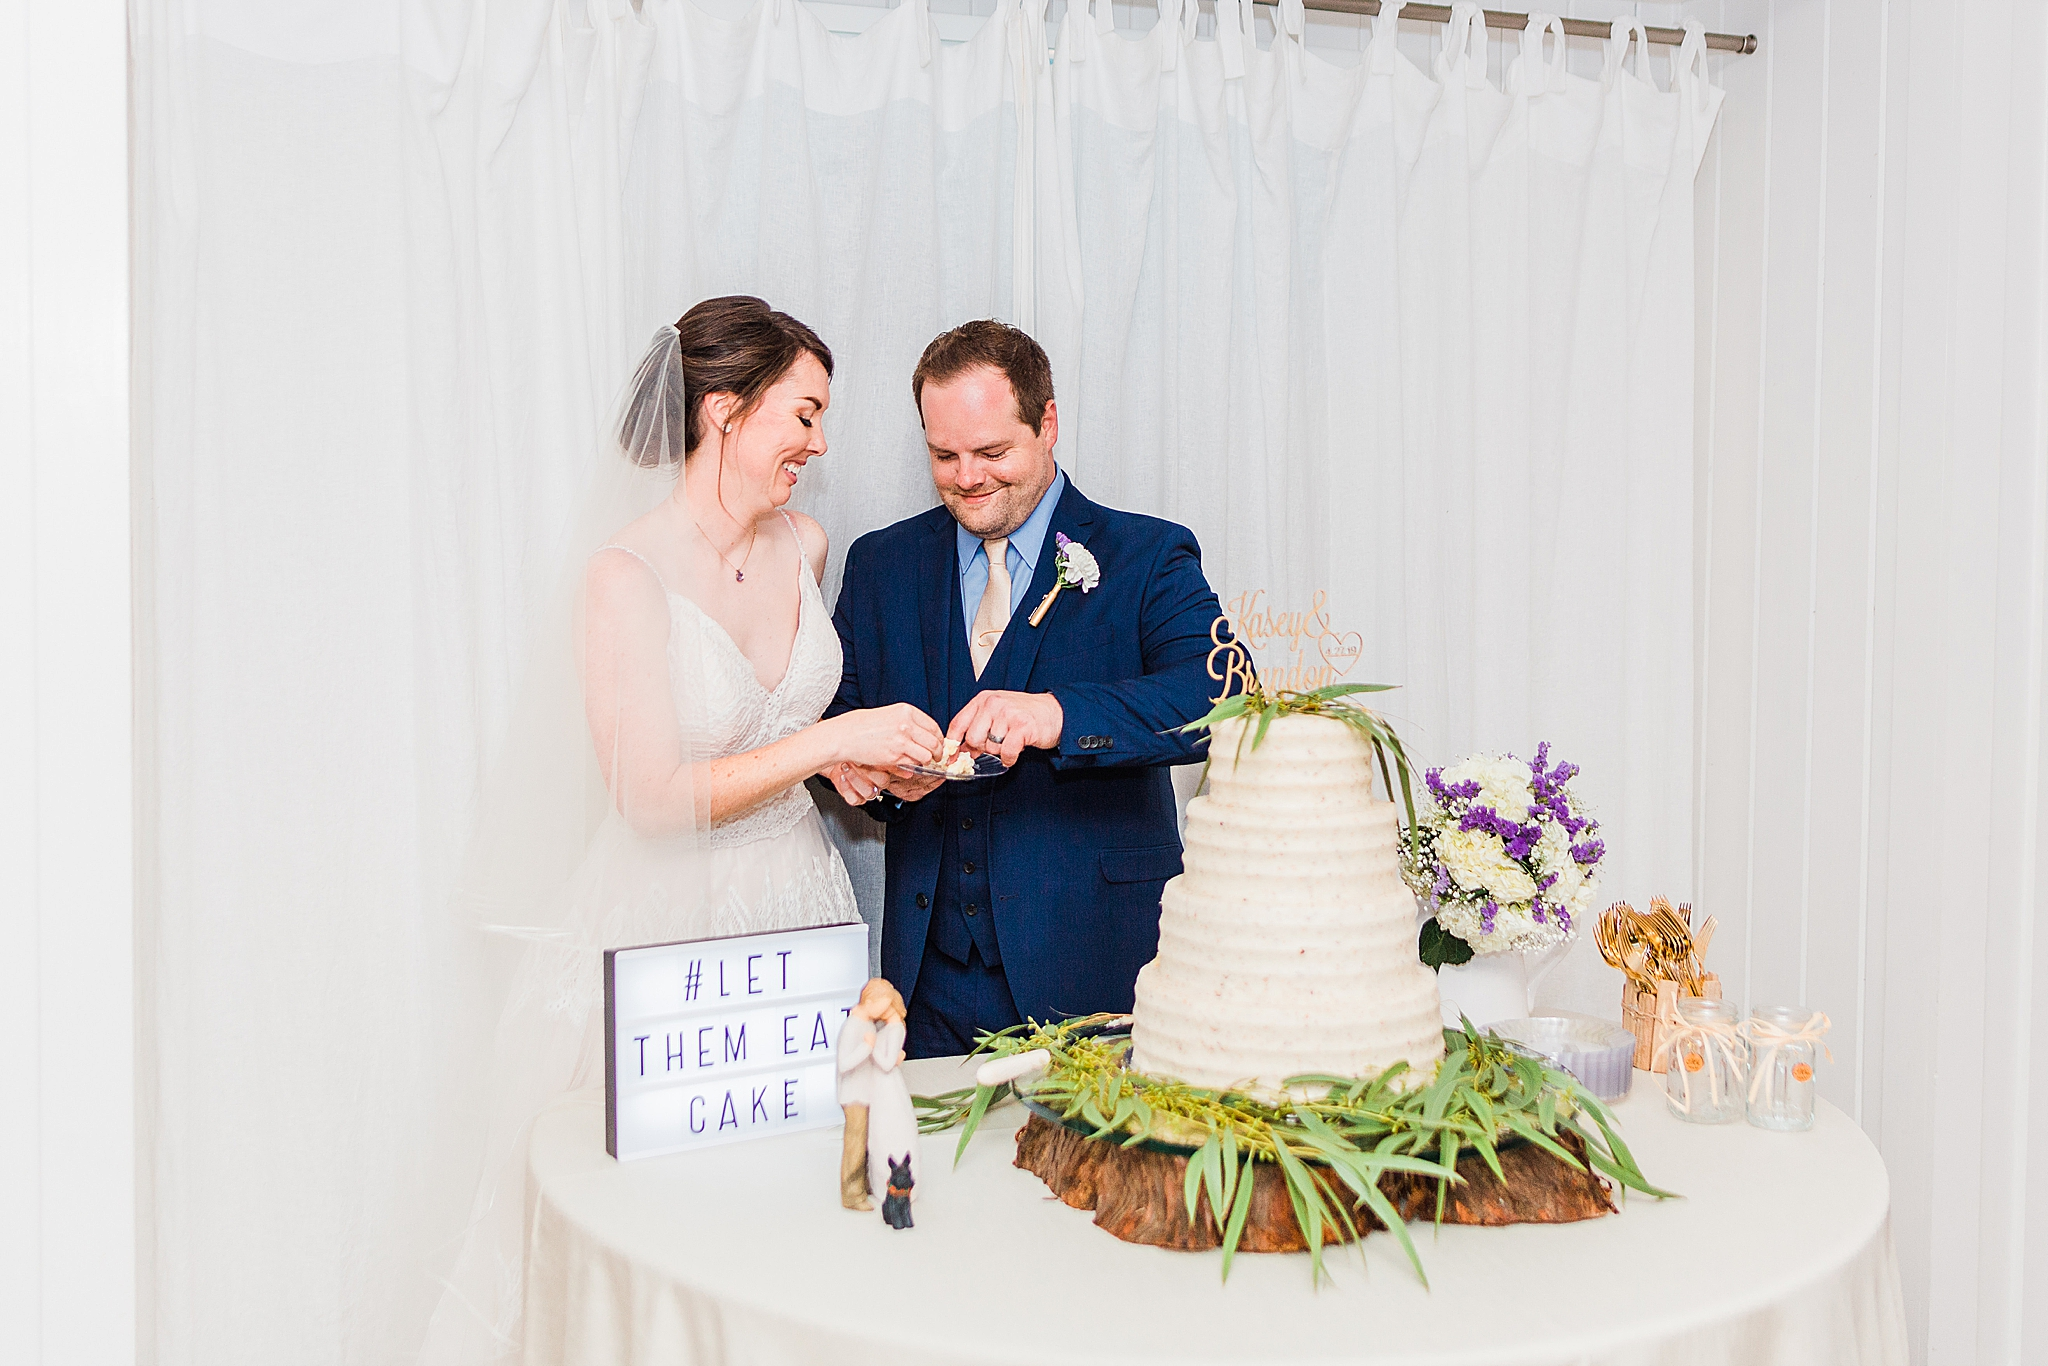 newlyweds cut wedding cake during AL wedding reception